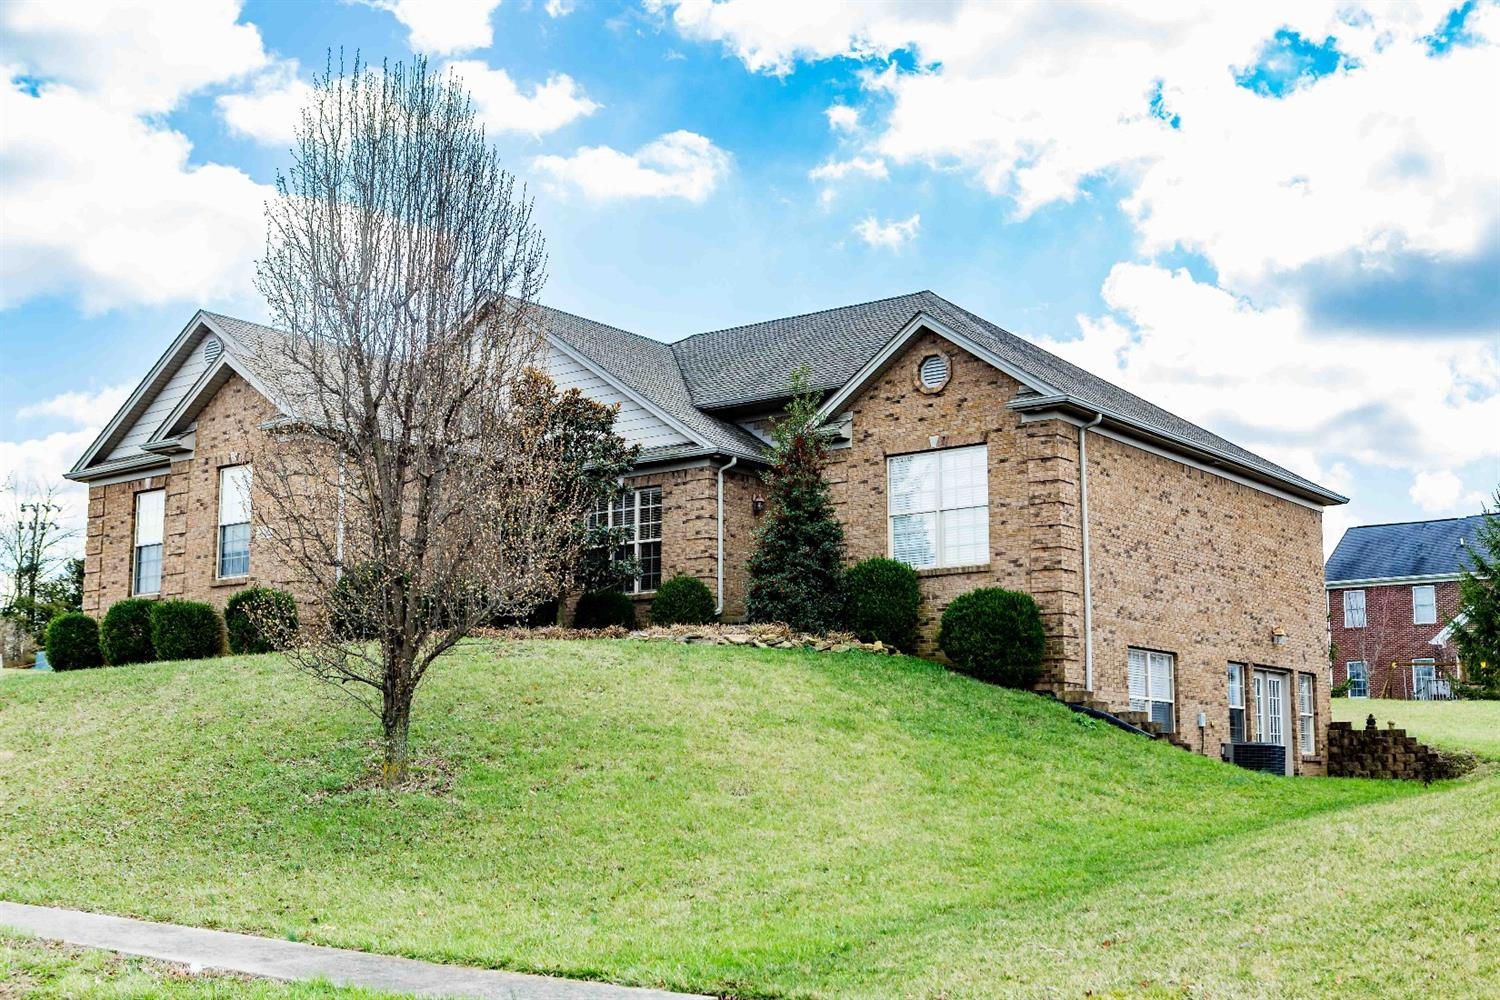 304%20Twin%20Pines%20Ln,%20Frankfort,%20KY%2040601